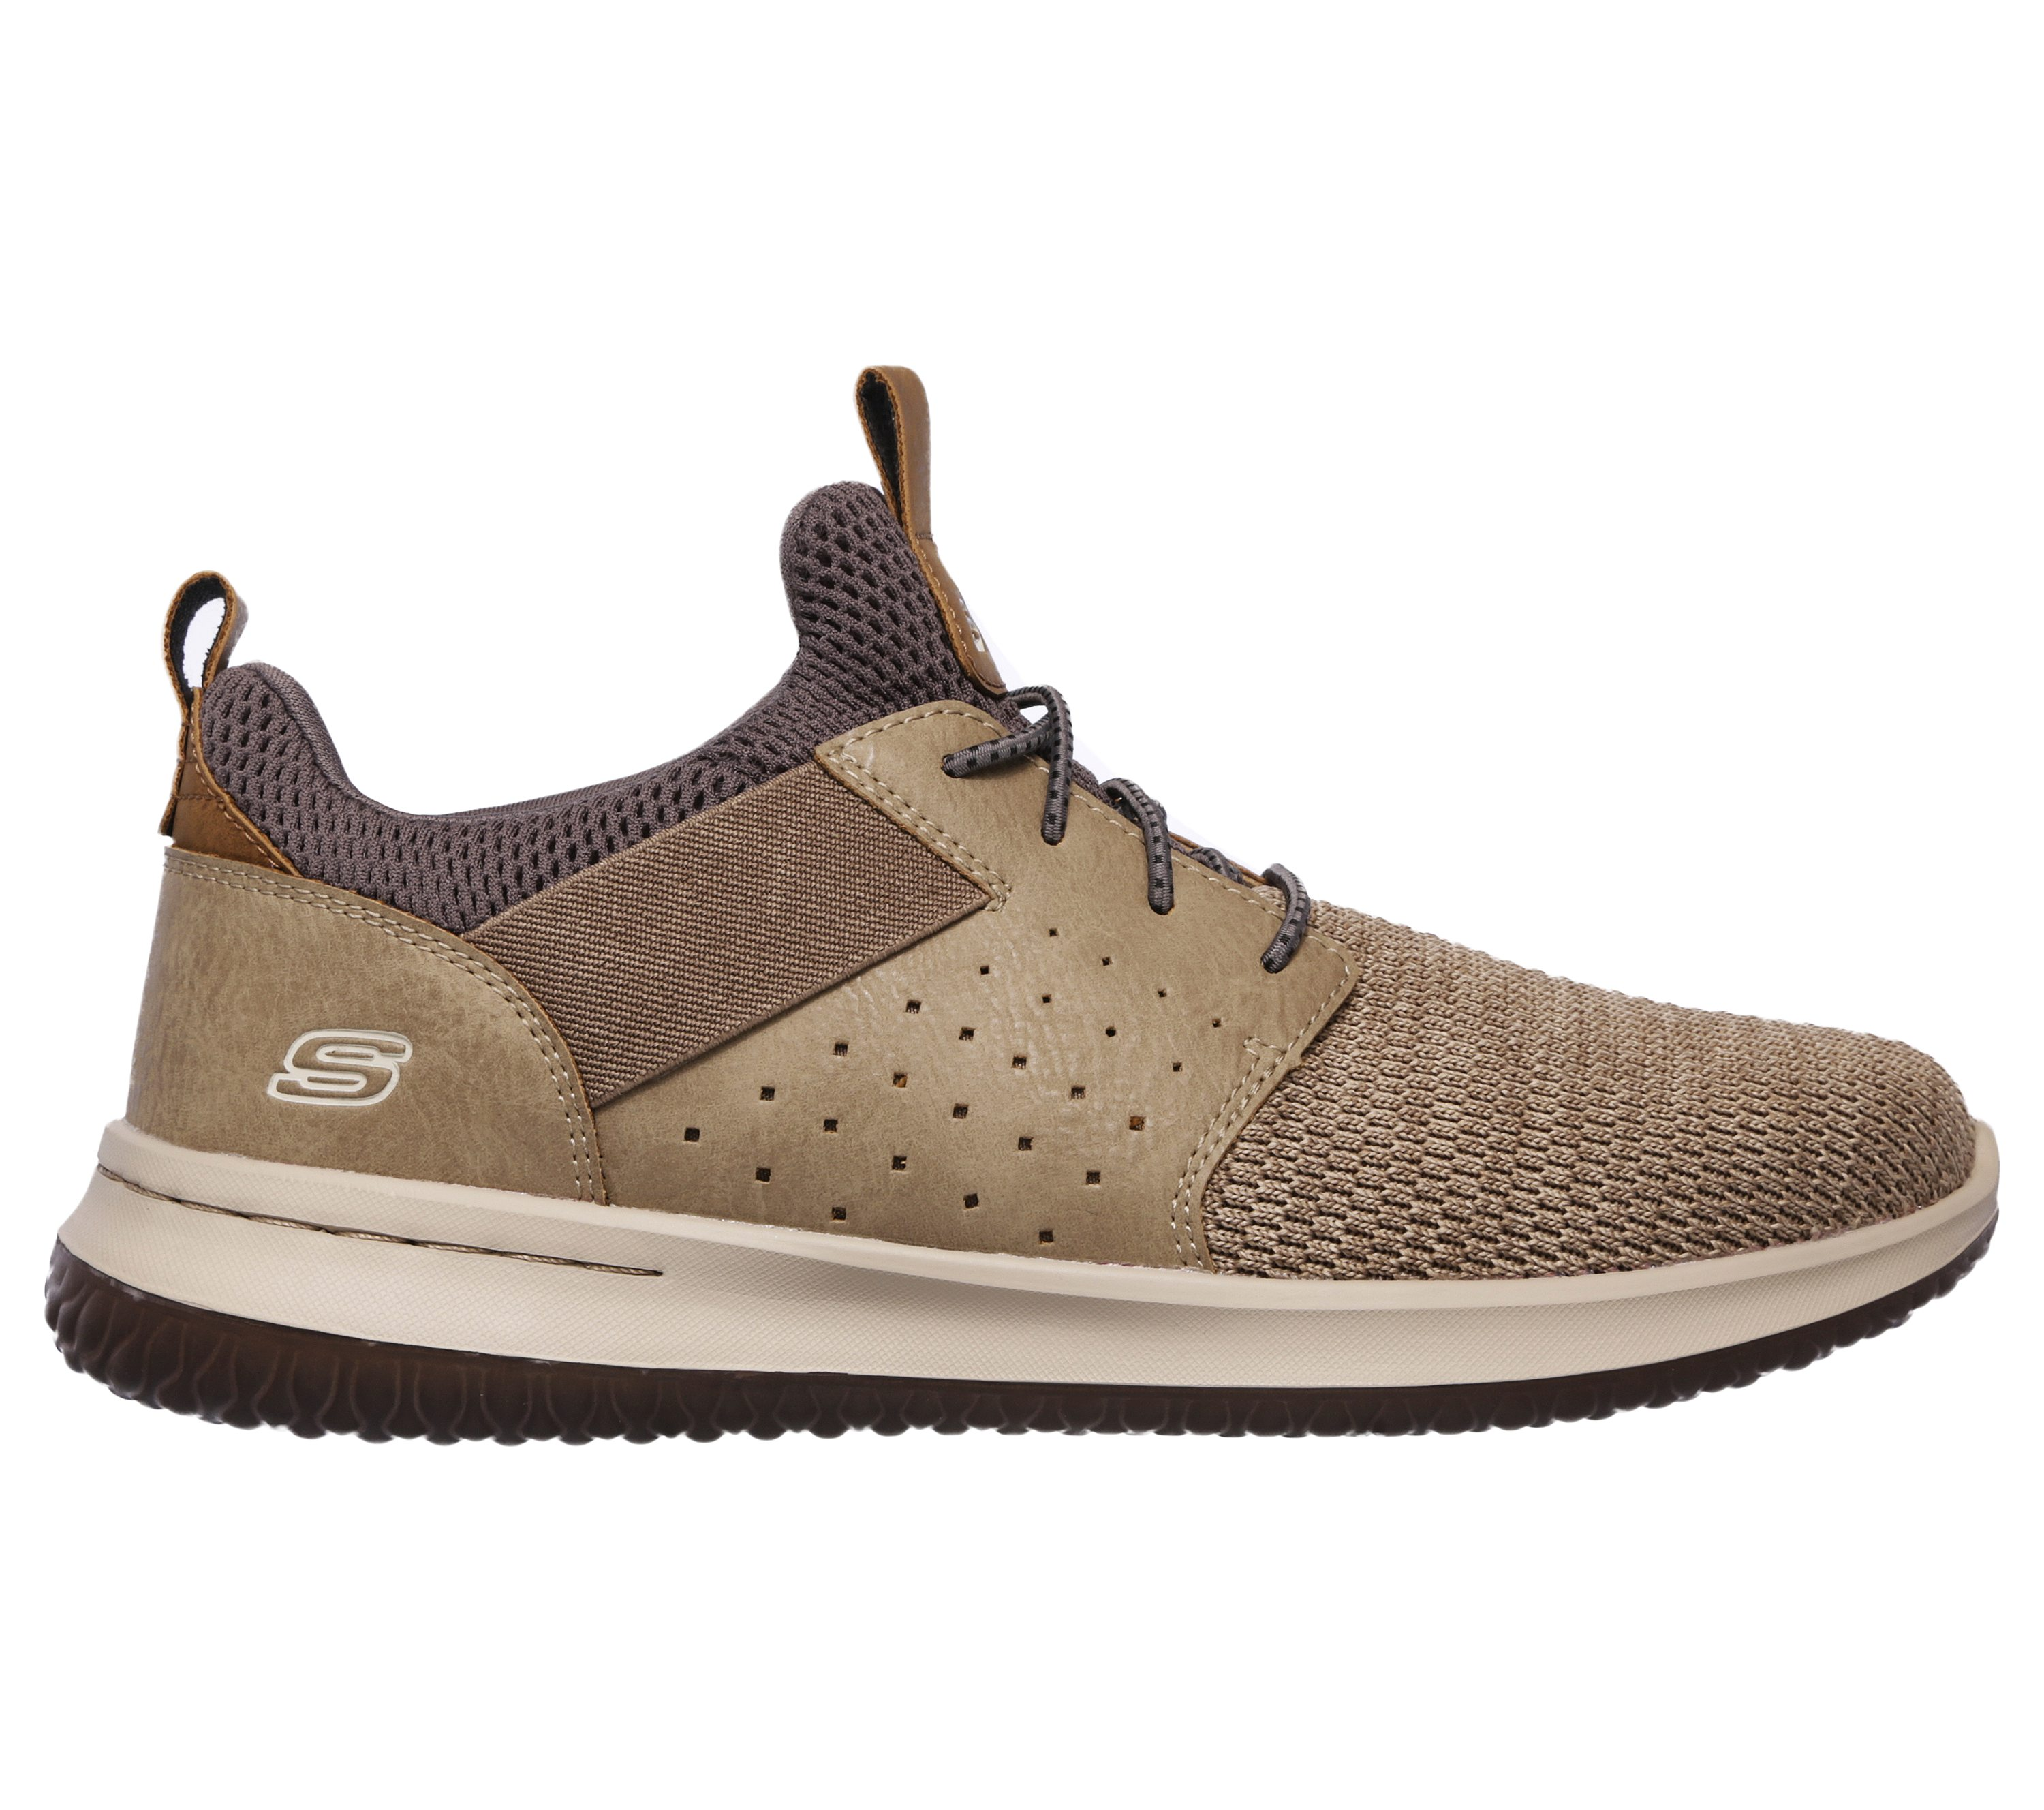 Shop the Delson - Camben | SKECHERS